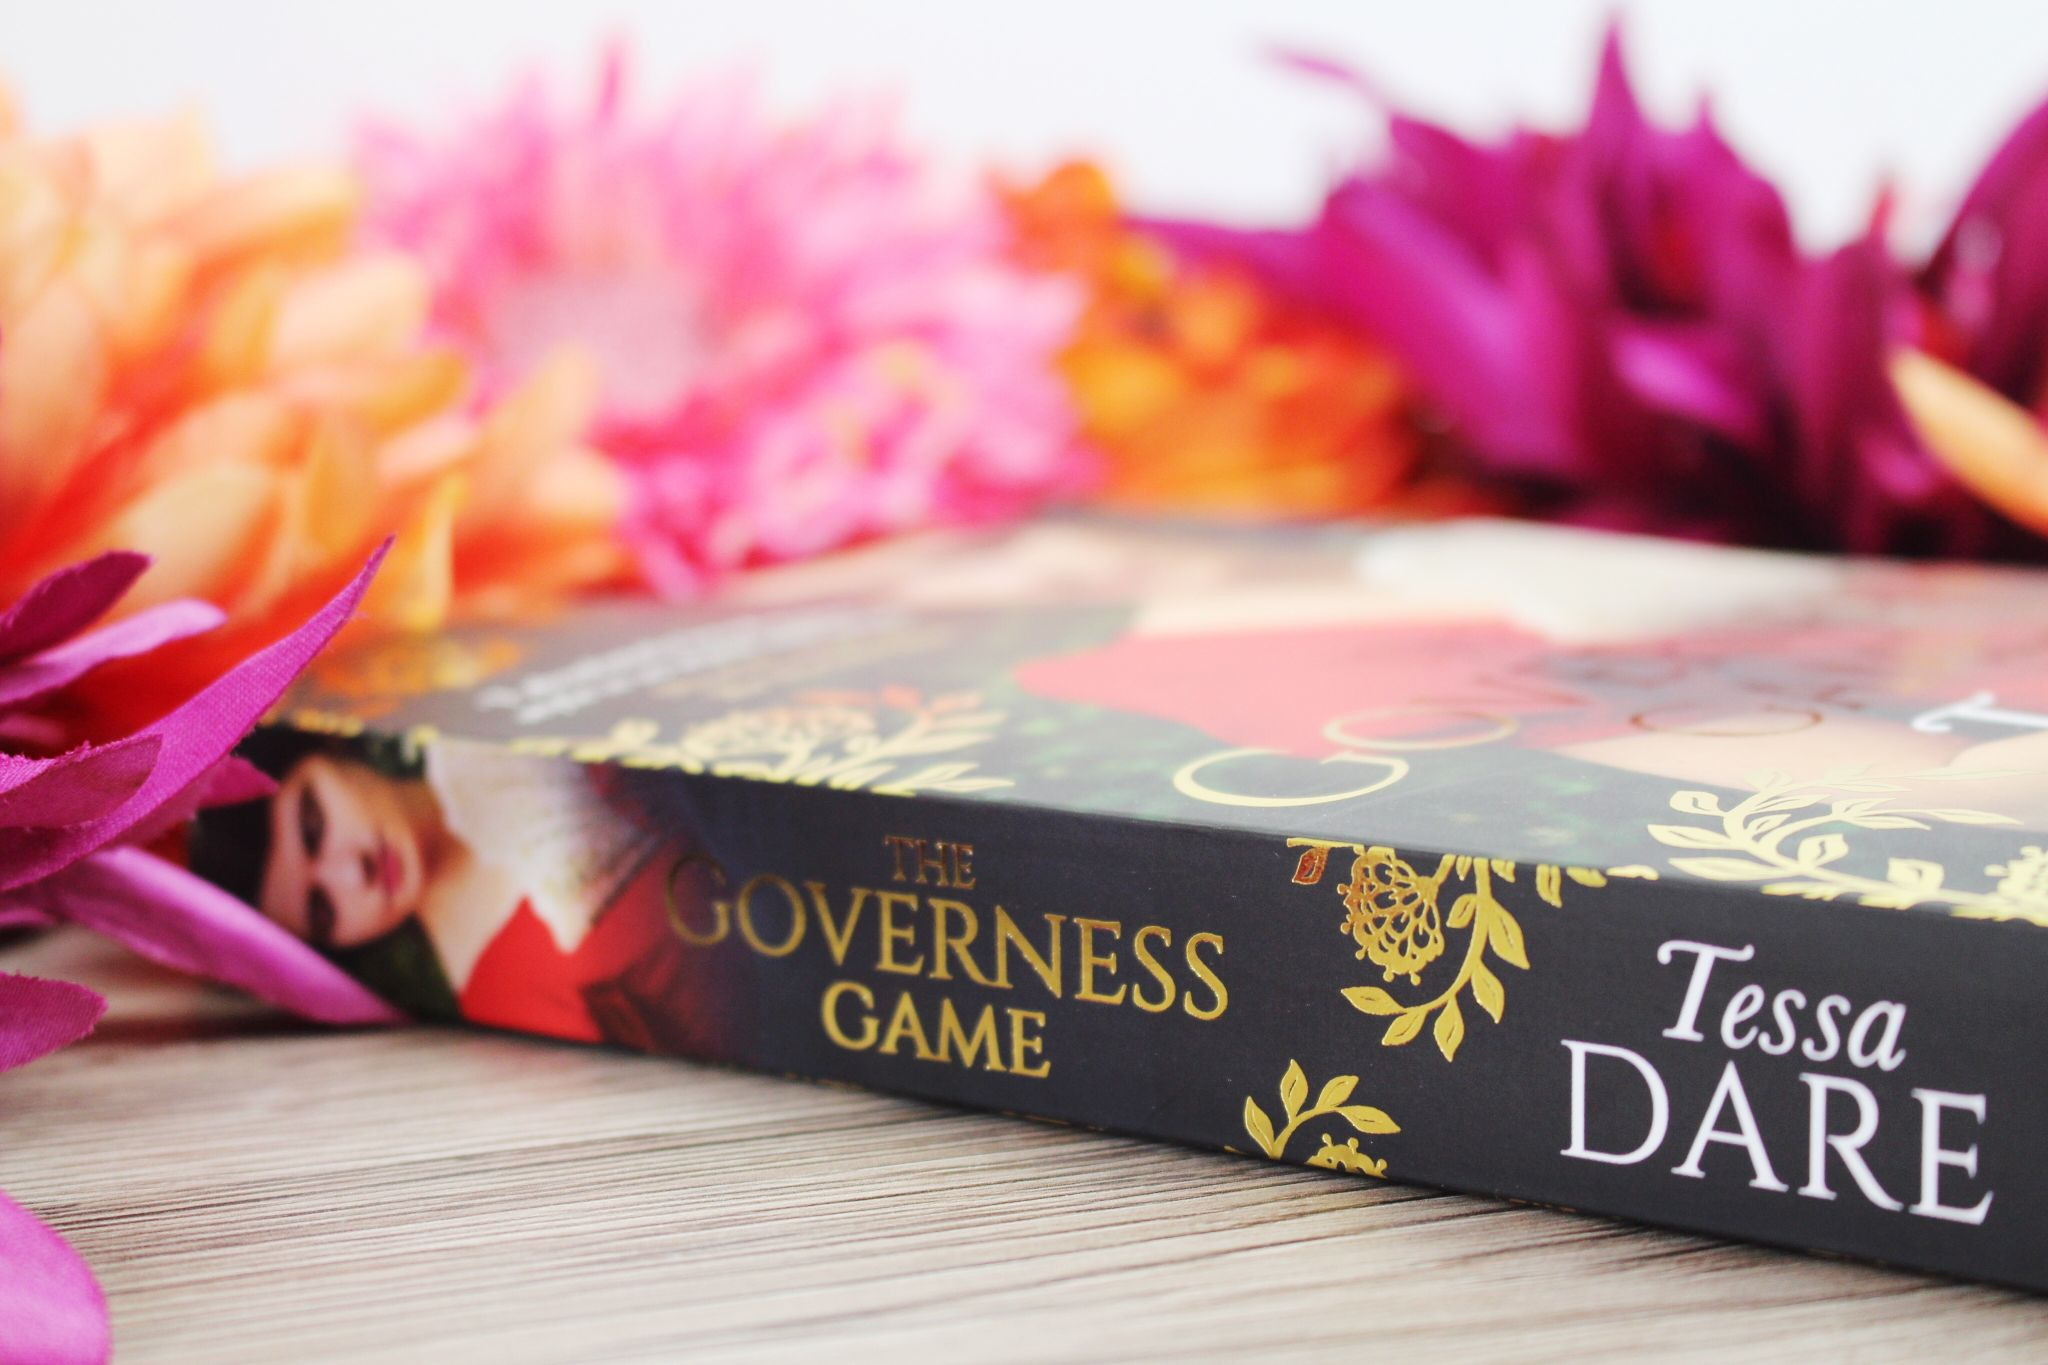 Clem Love The Governess Game